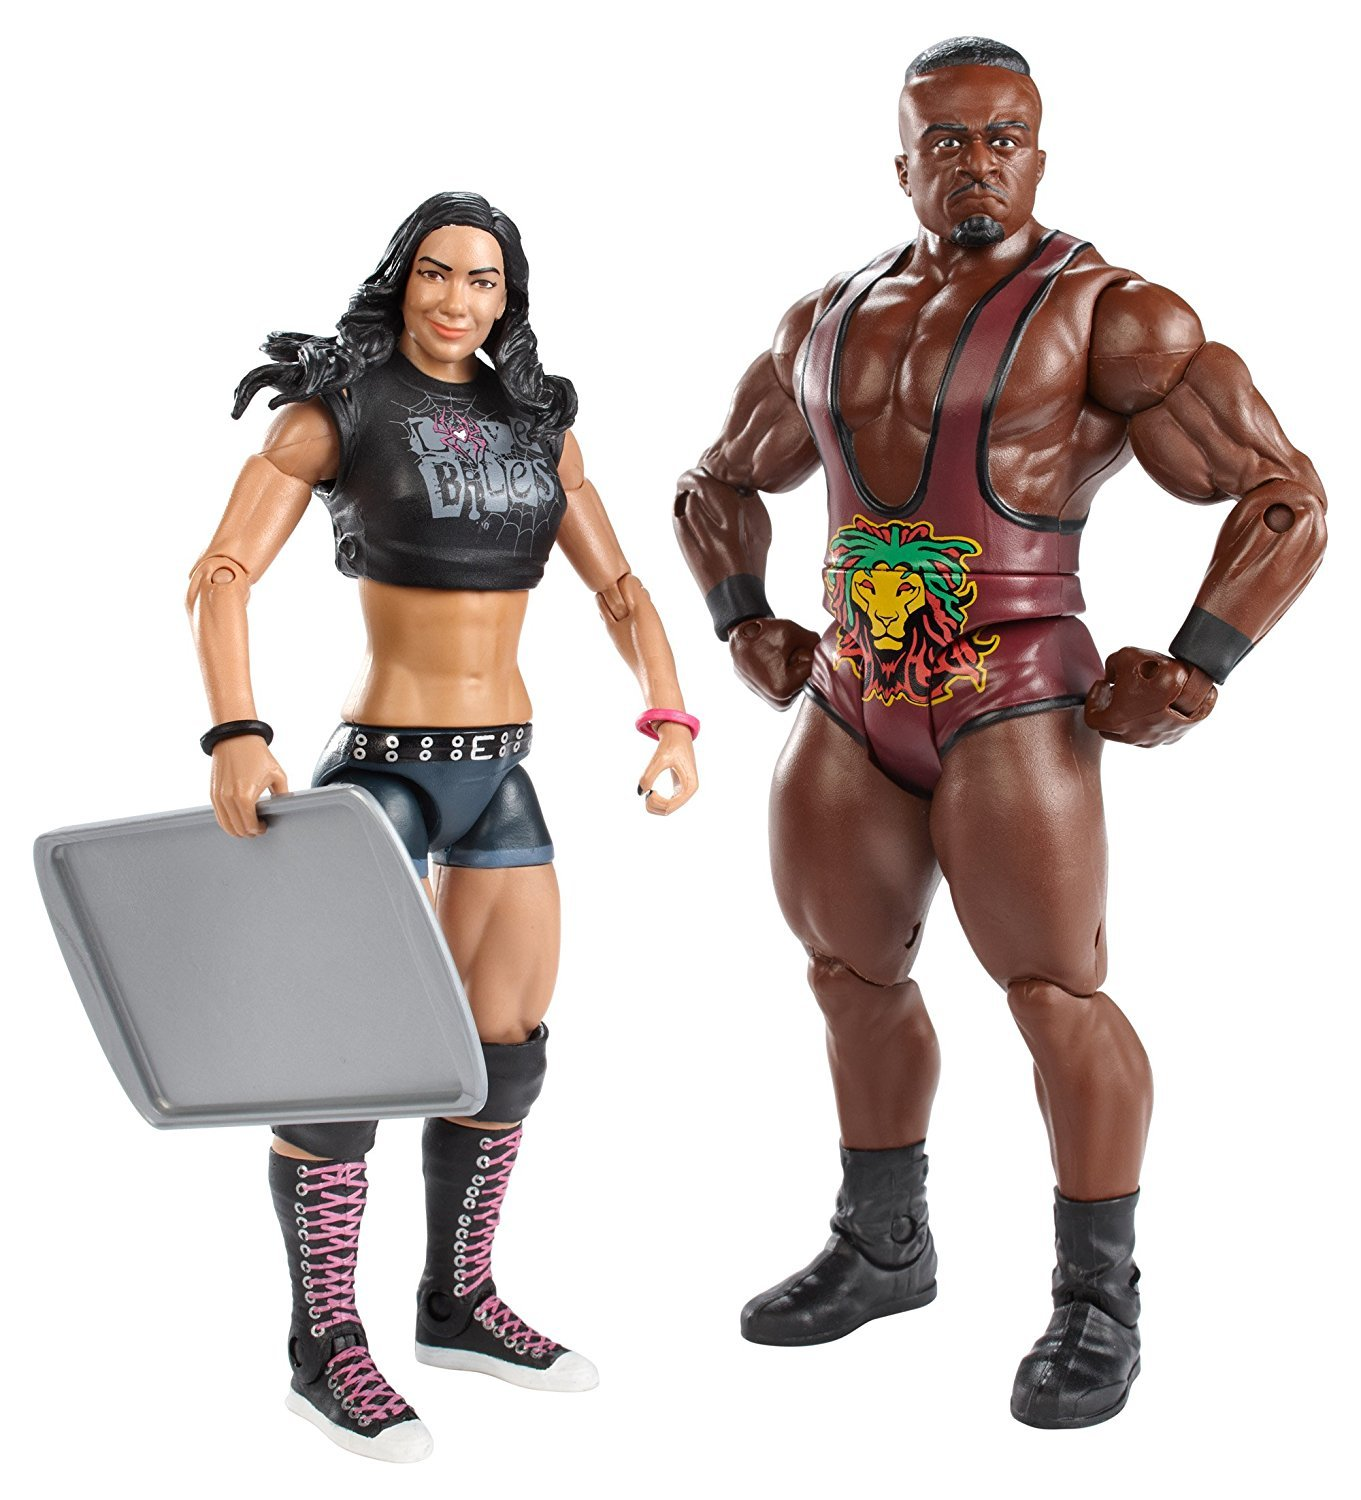 WWE Series #28 Big E Langston and AJ Lee Figure with Cookie Sheet (2-Pack) by Mattel